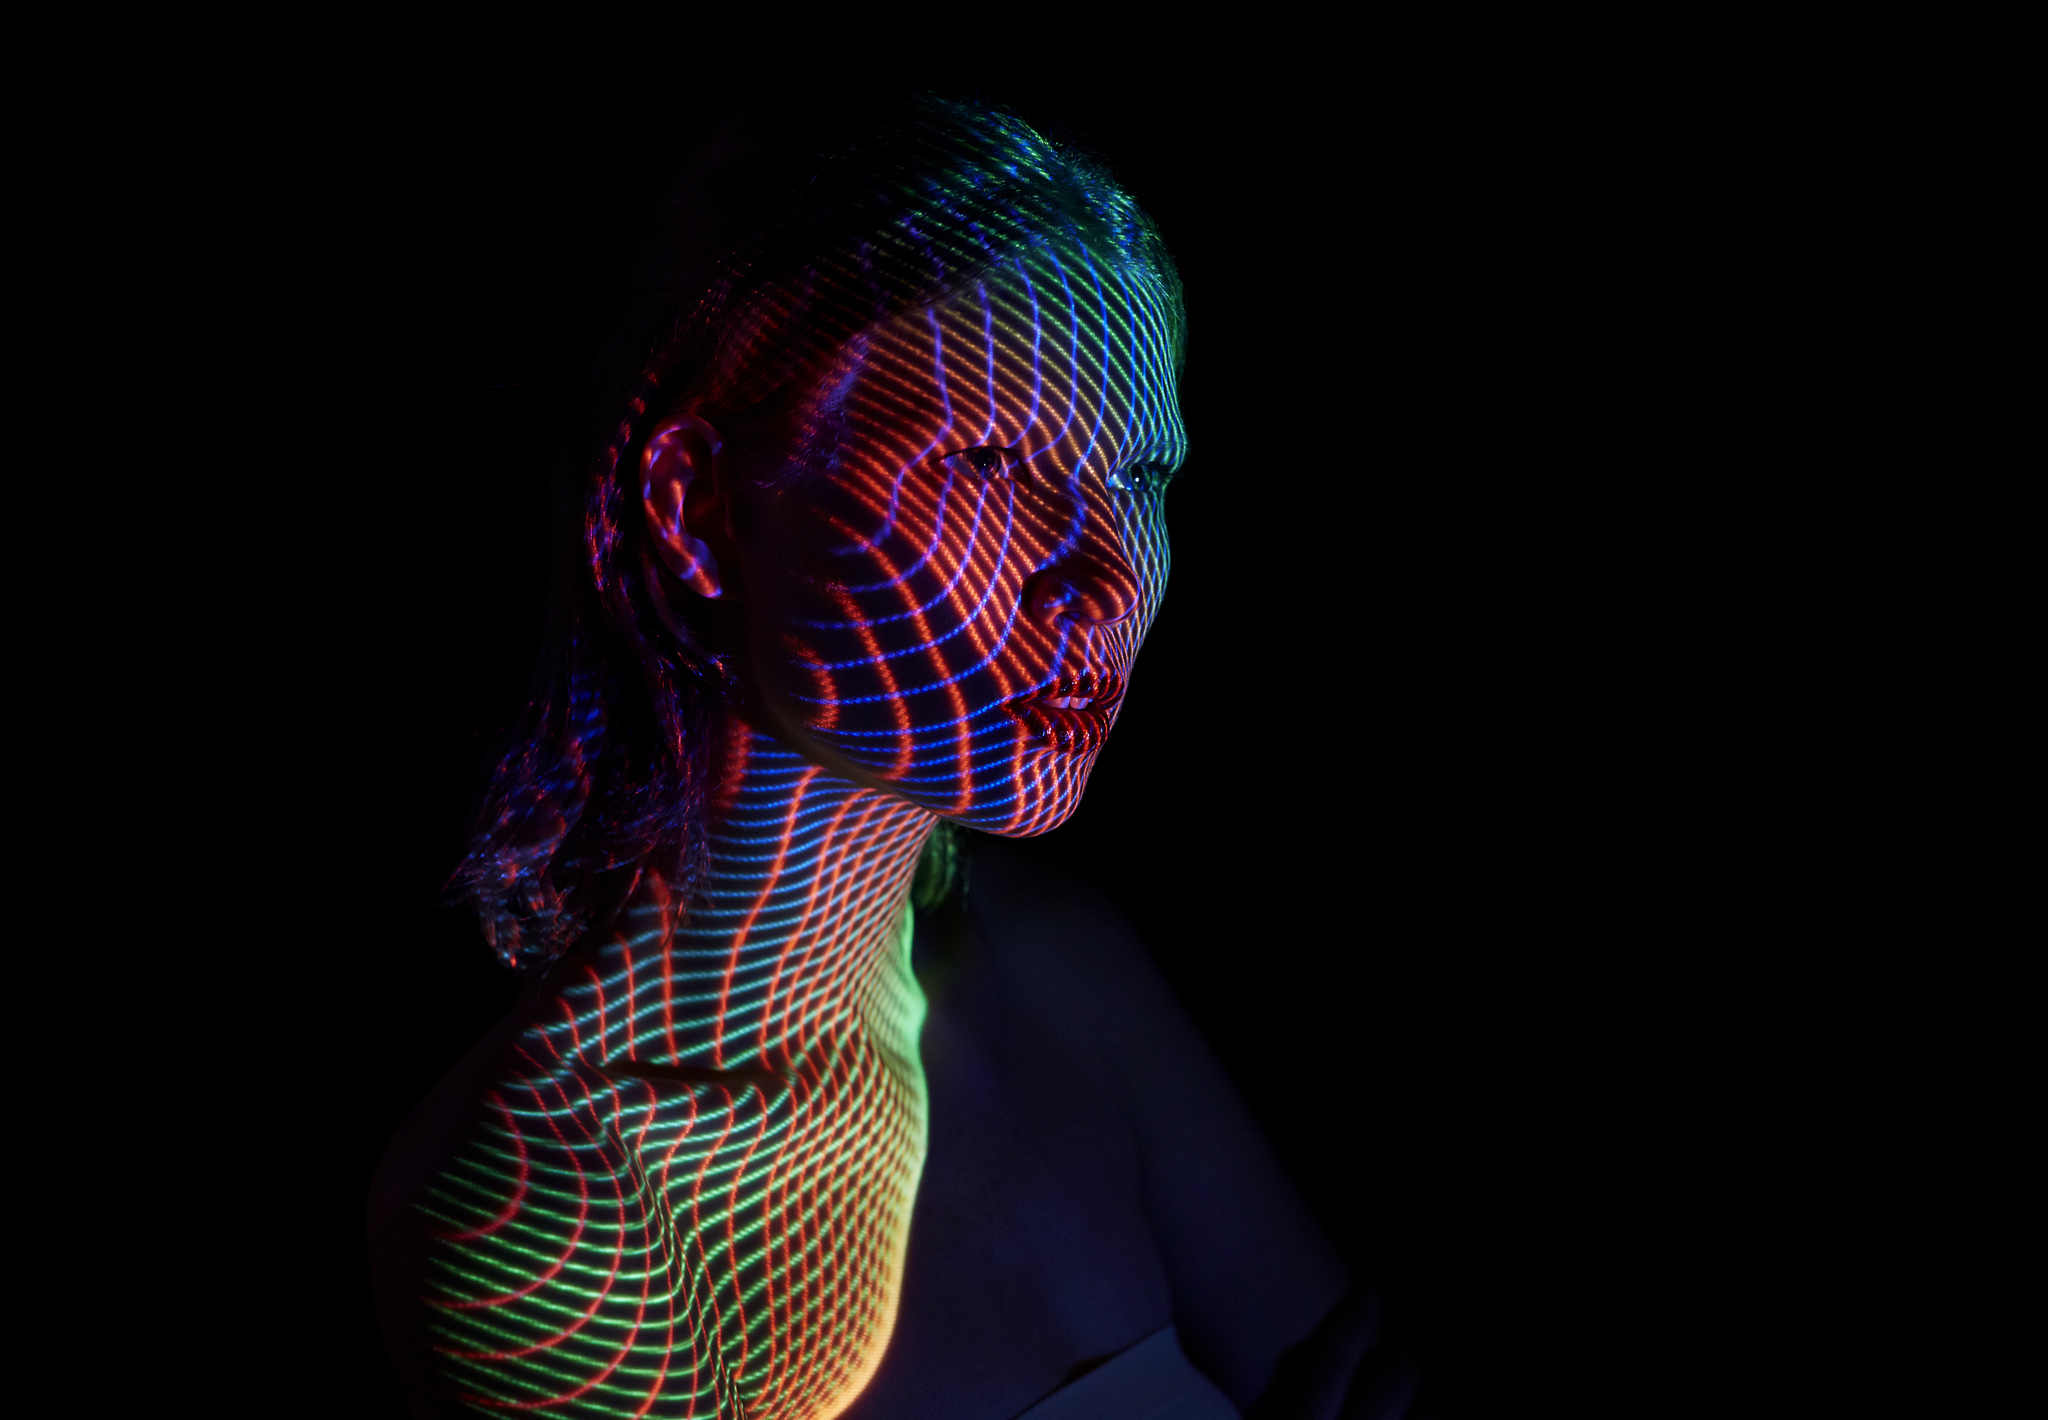 Mads Perchs Stunning Light Projections On Human Figures